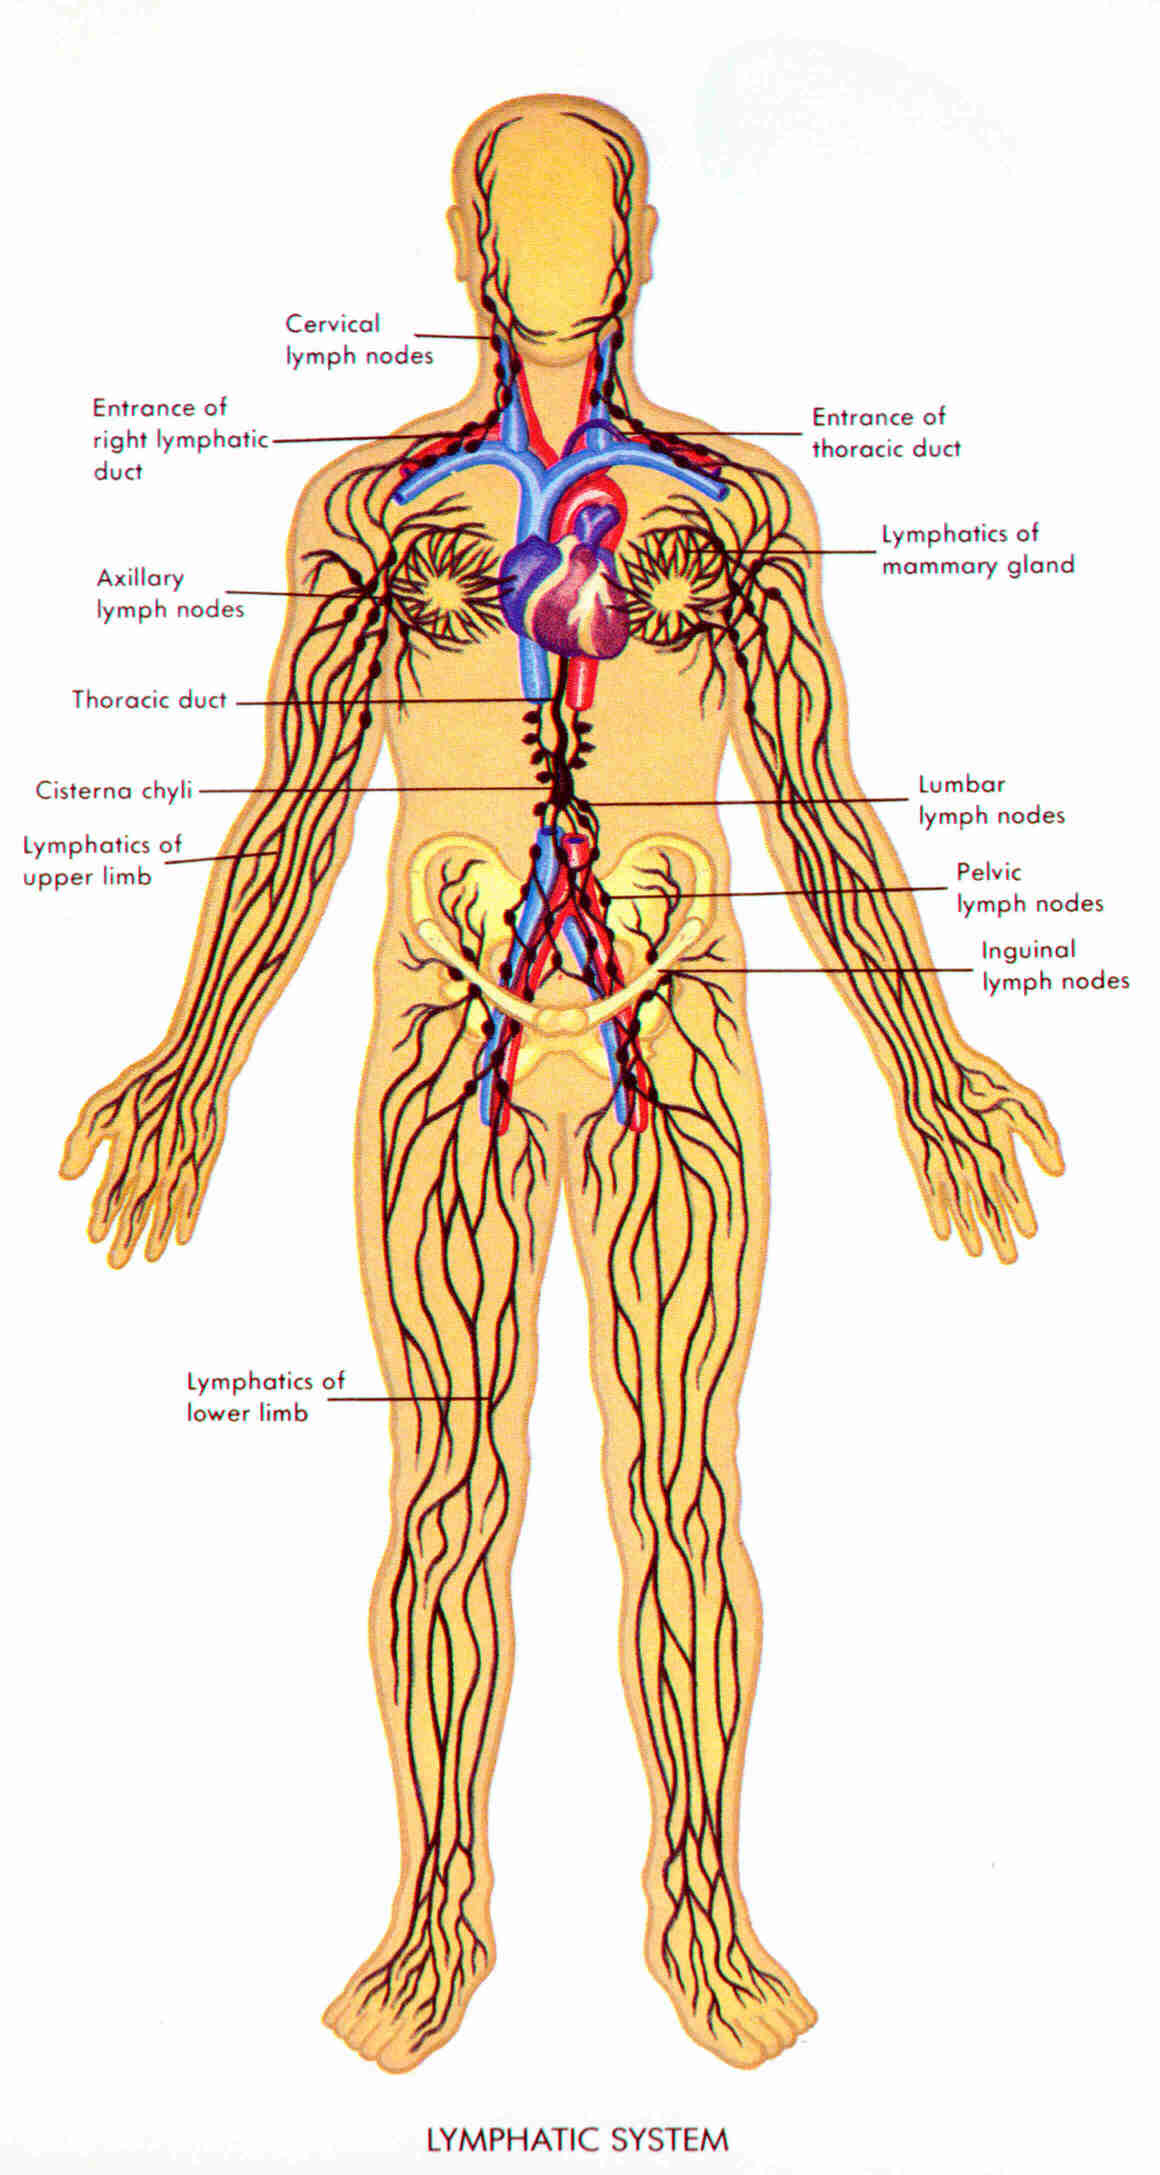 lymphatic system | cancer prevention | Pinterest | Lymphatic system ...